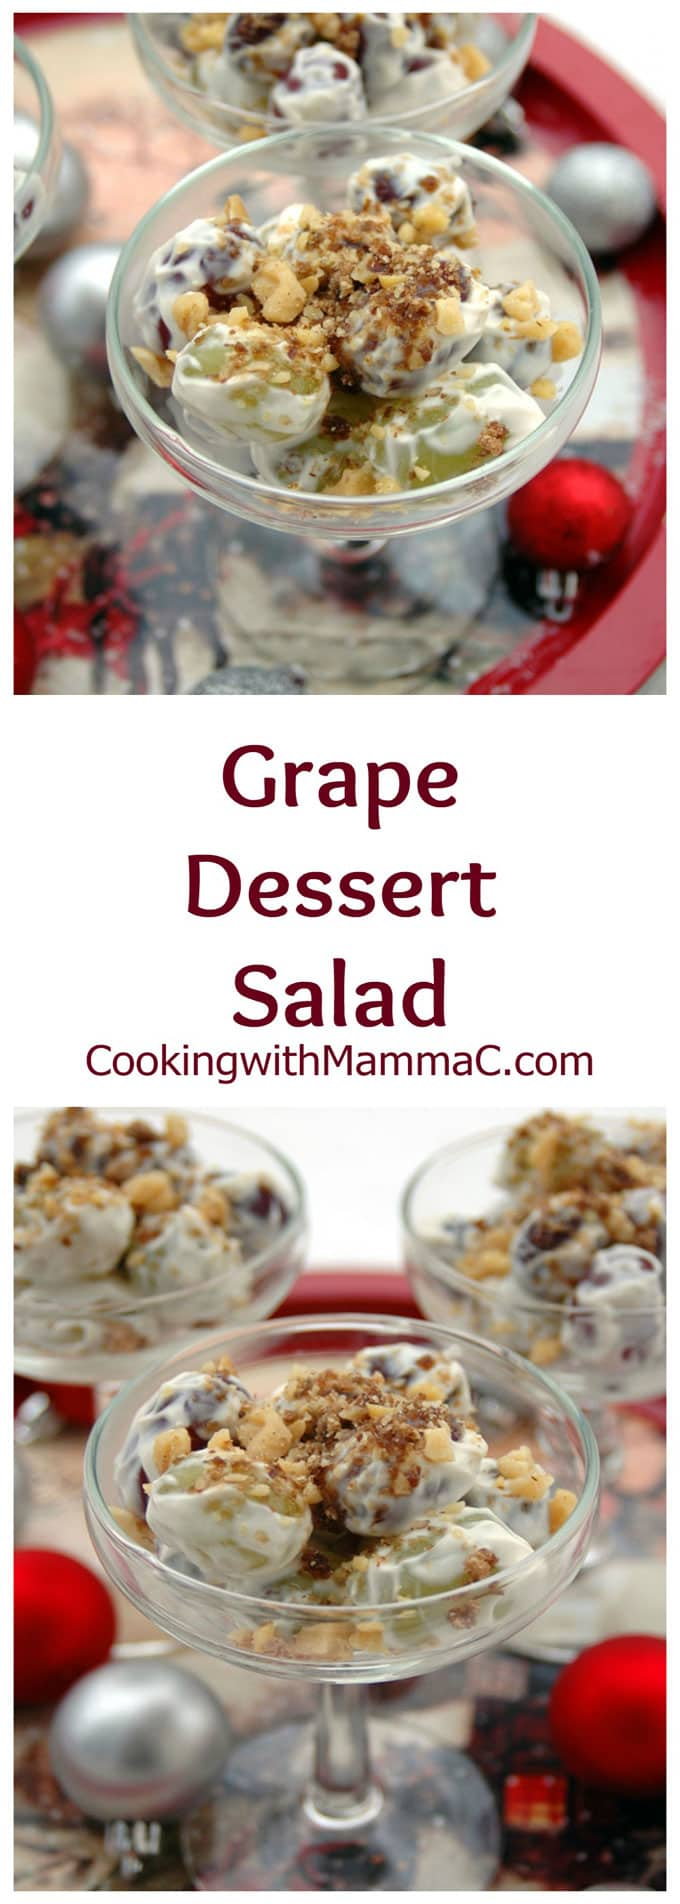 Grape Dessert Salad takes just 15 minutes and is so delicious! Grapes are mixed with a creamy vanilla dressing and topped with brown sugar and walnuts. Quick, easy and gluten free!